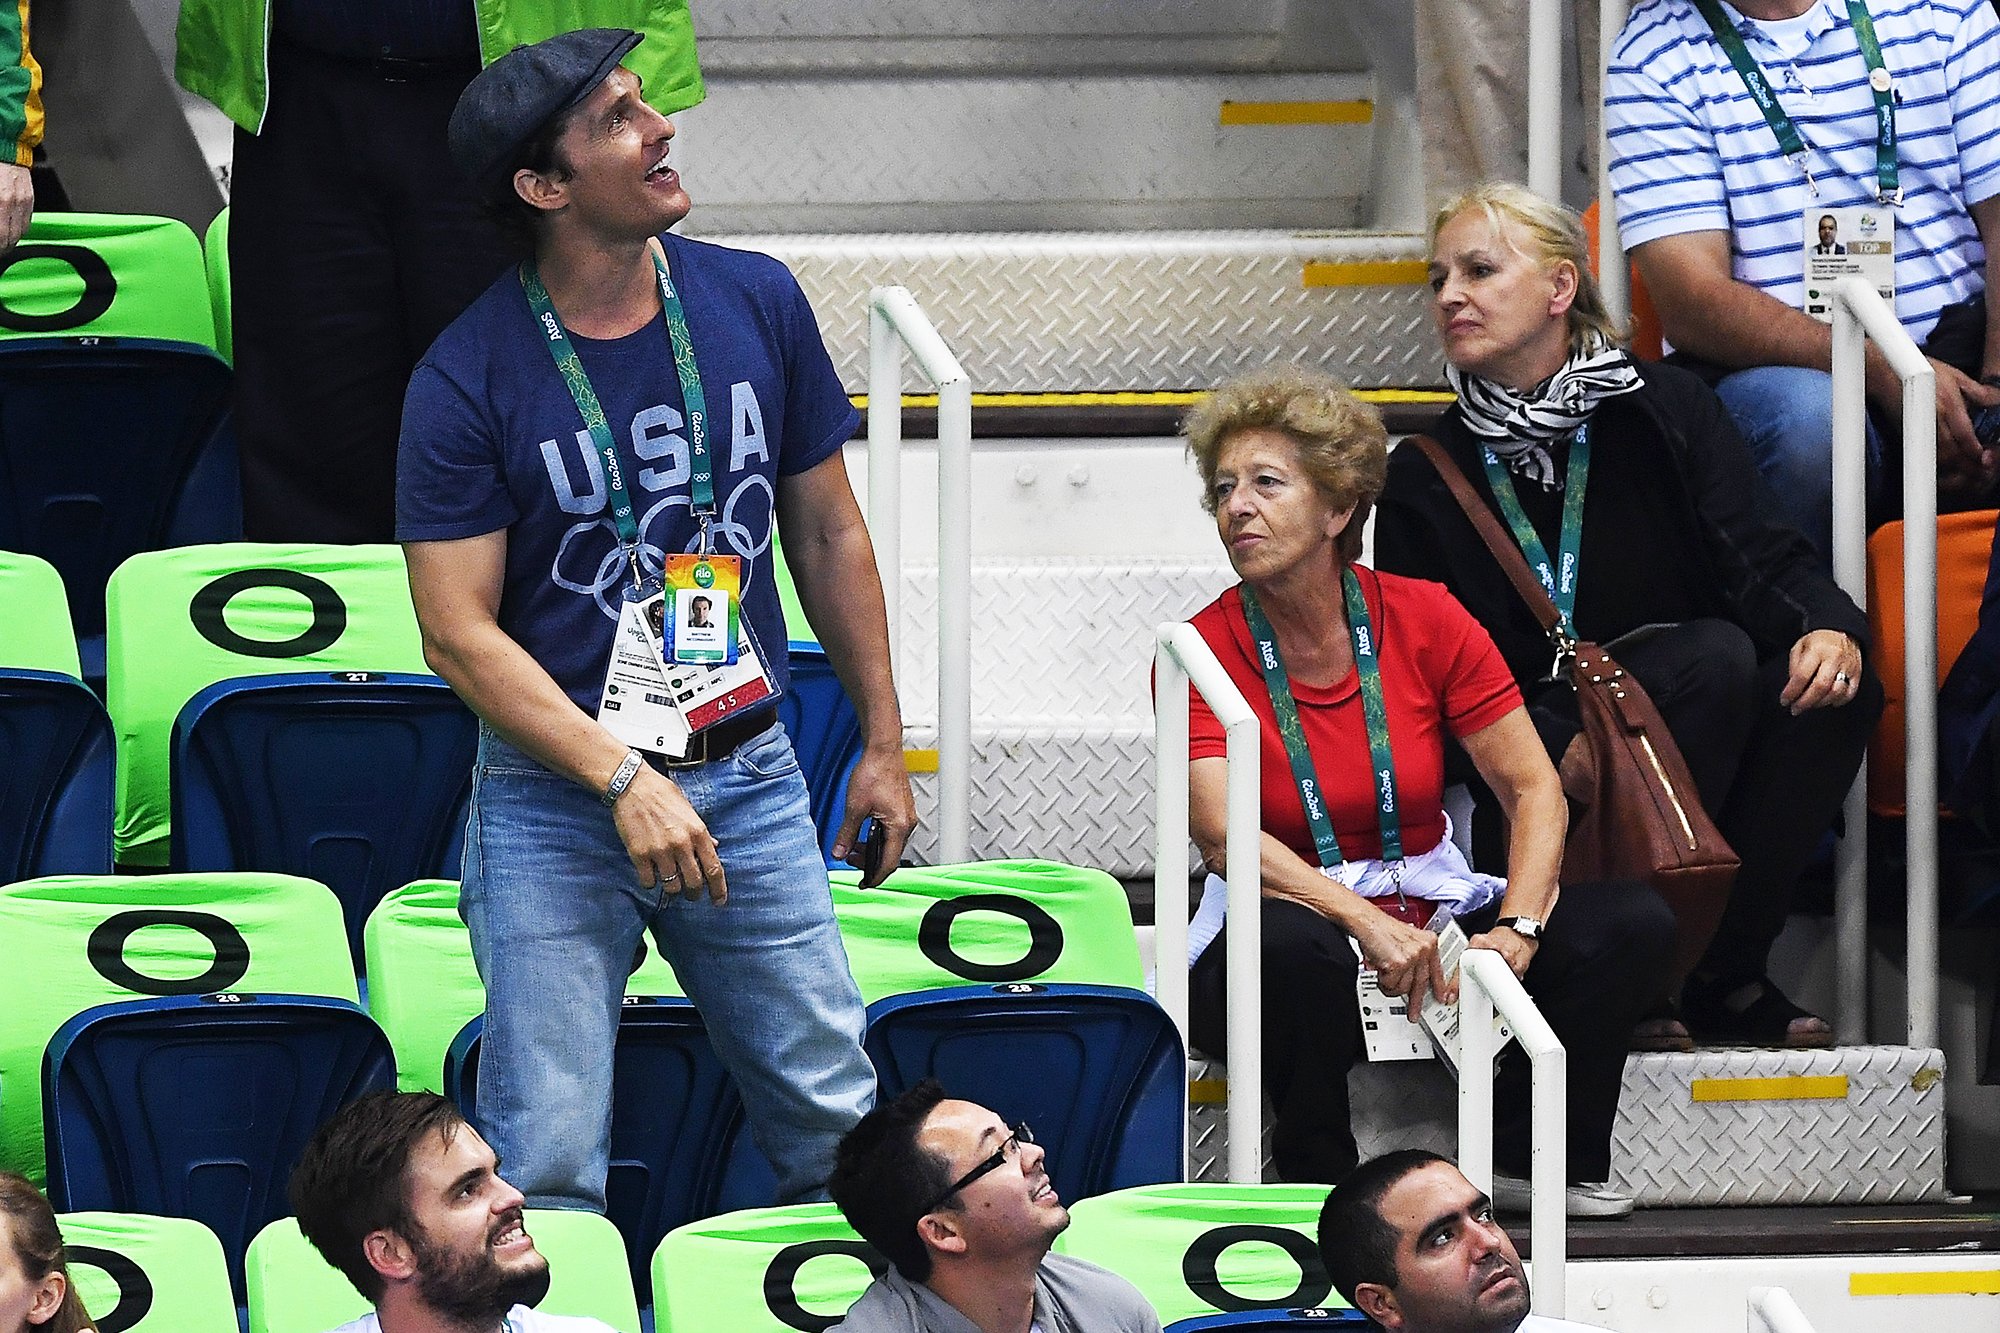 Matthew McConaughey attends swimming finals on Day 3 of the Rio 2016 Olympic Games, on Aug. 8, 2016 in Rio de Janeiro, Brazil.